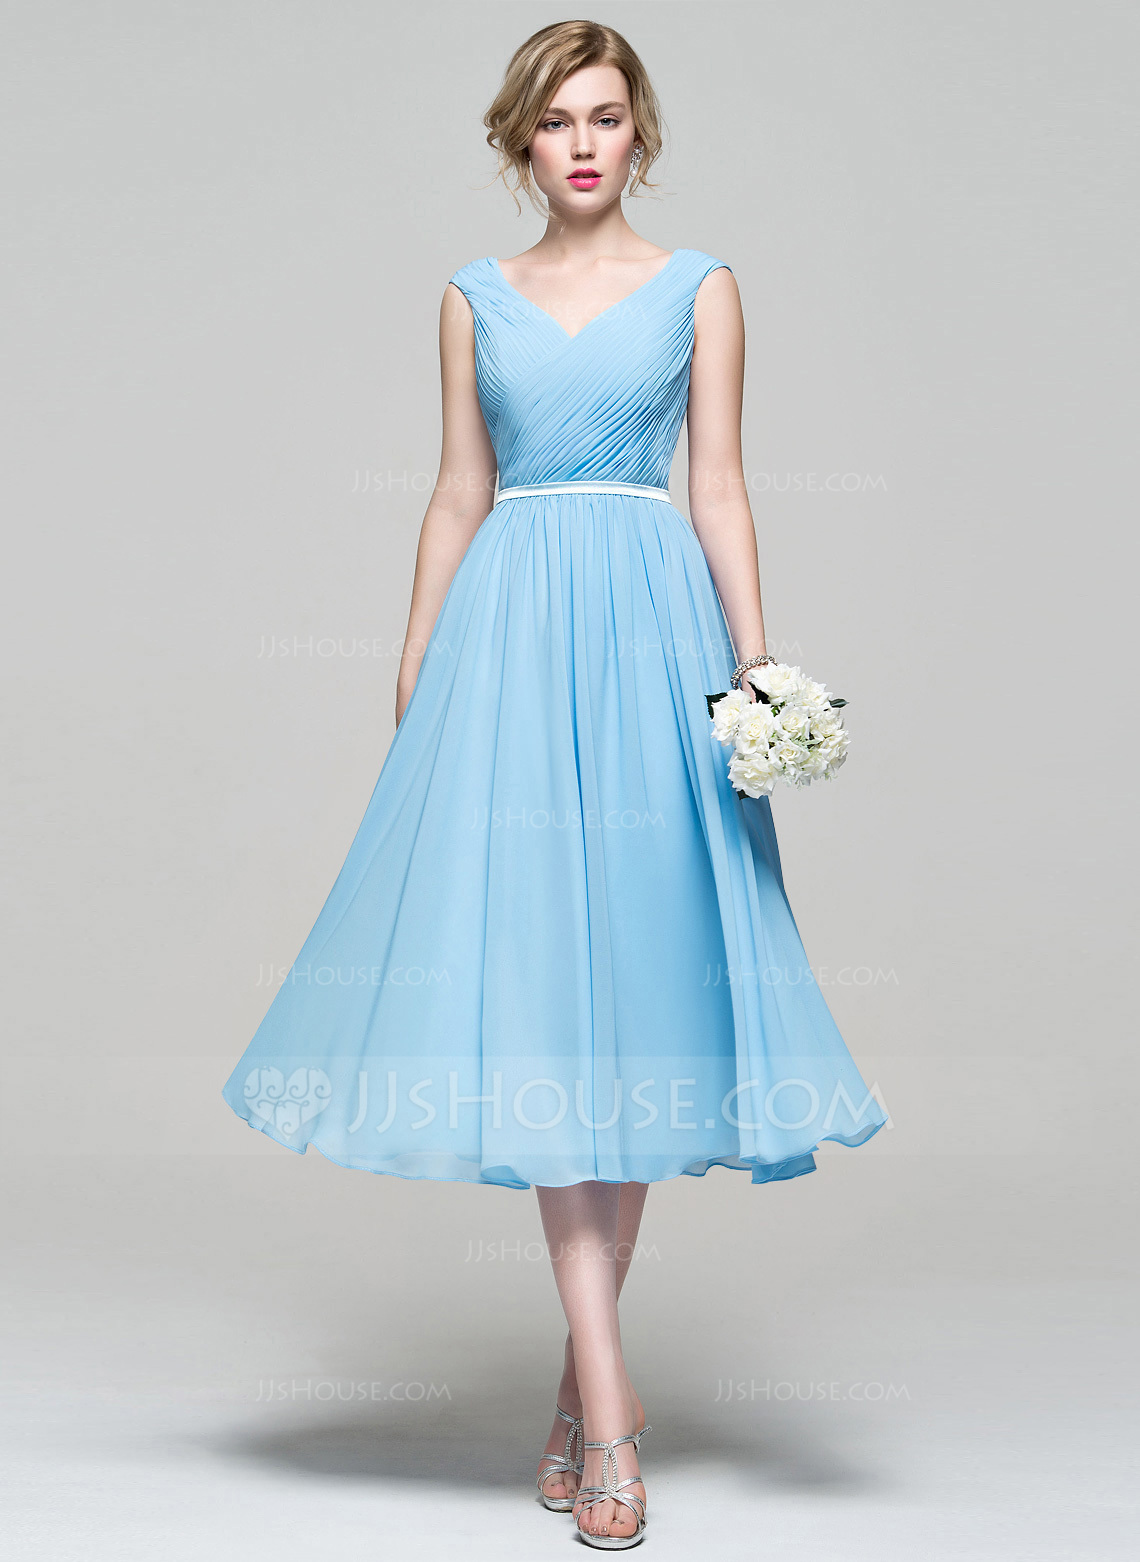 tea length dresses a-line/princess v-neck tea-length chiffon bridesmaid dress with ruffle.  loading zoom vpshbnj